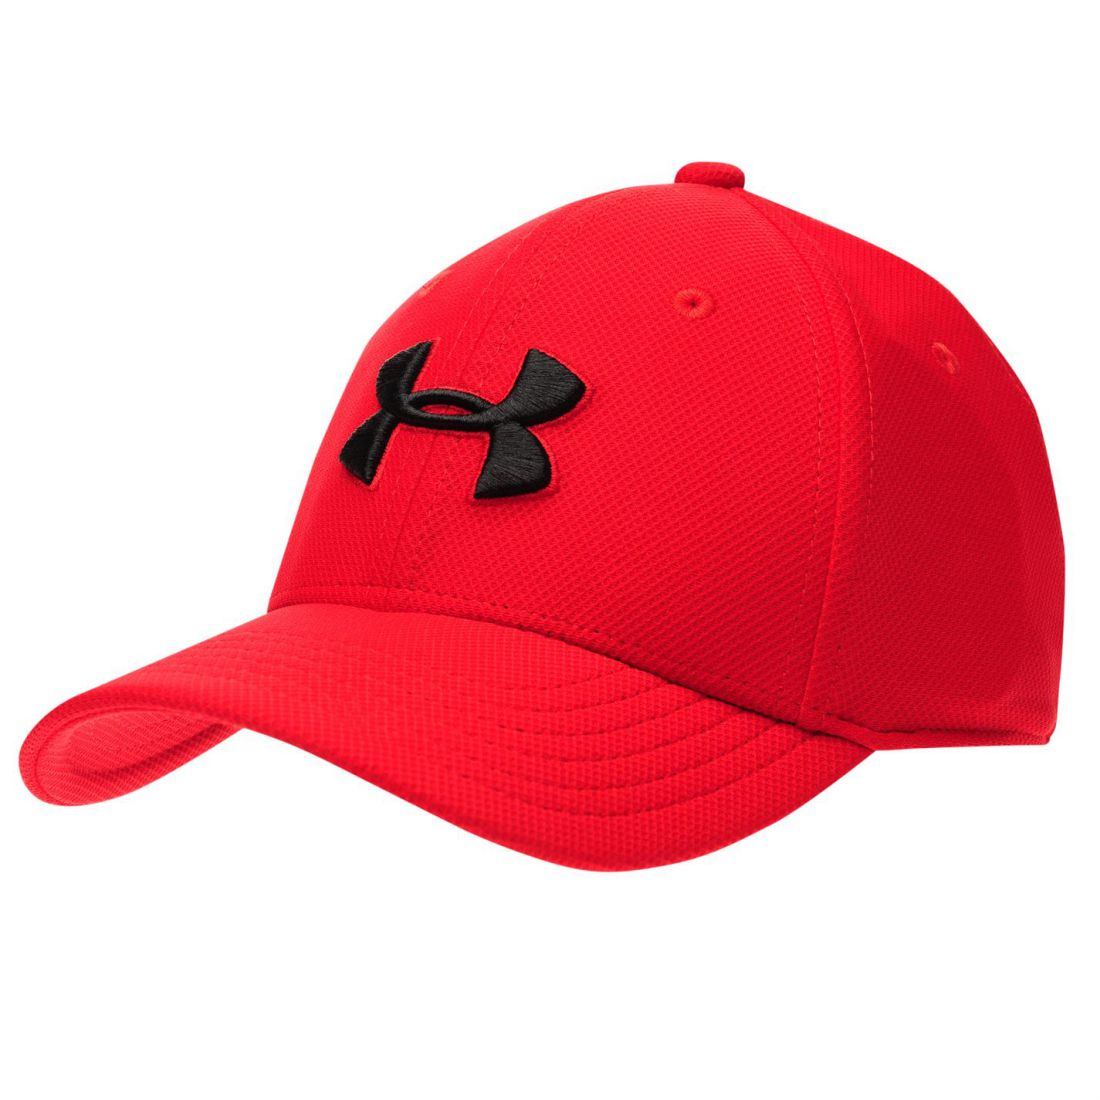 057ae675af8f5 Under Armour Kids Boys Blitzing 3.0 Cap Junior Baseball Tonal ...